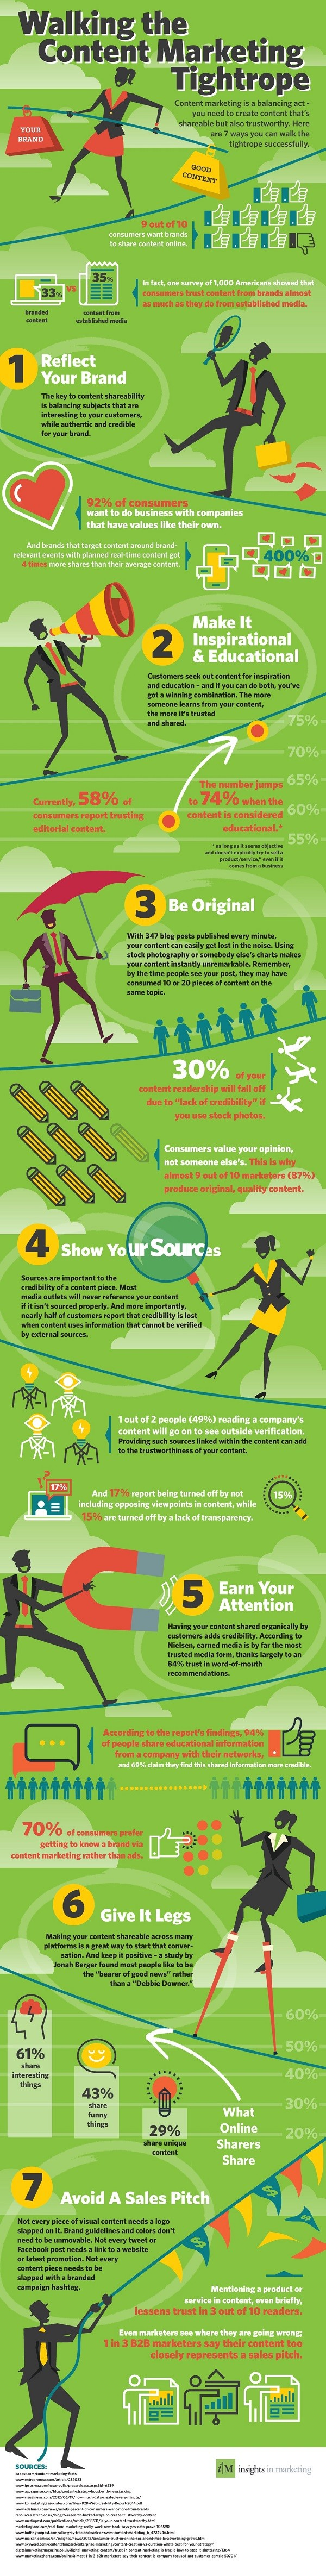 151024-walking-the-content-marketing-tightrope-infographic